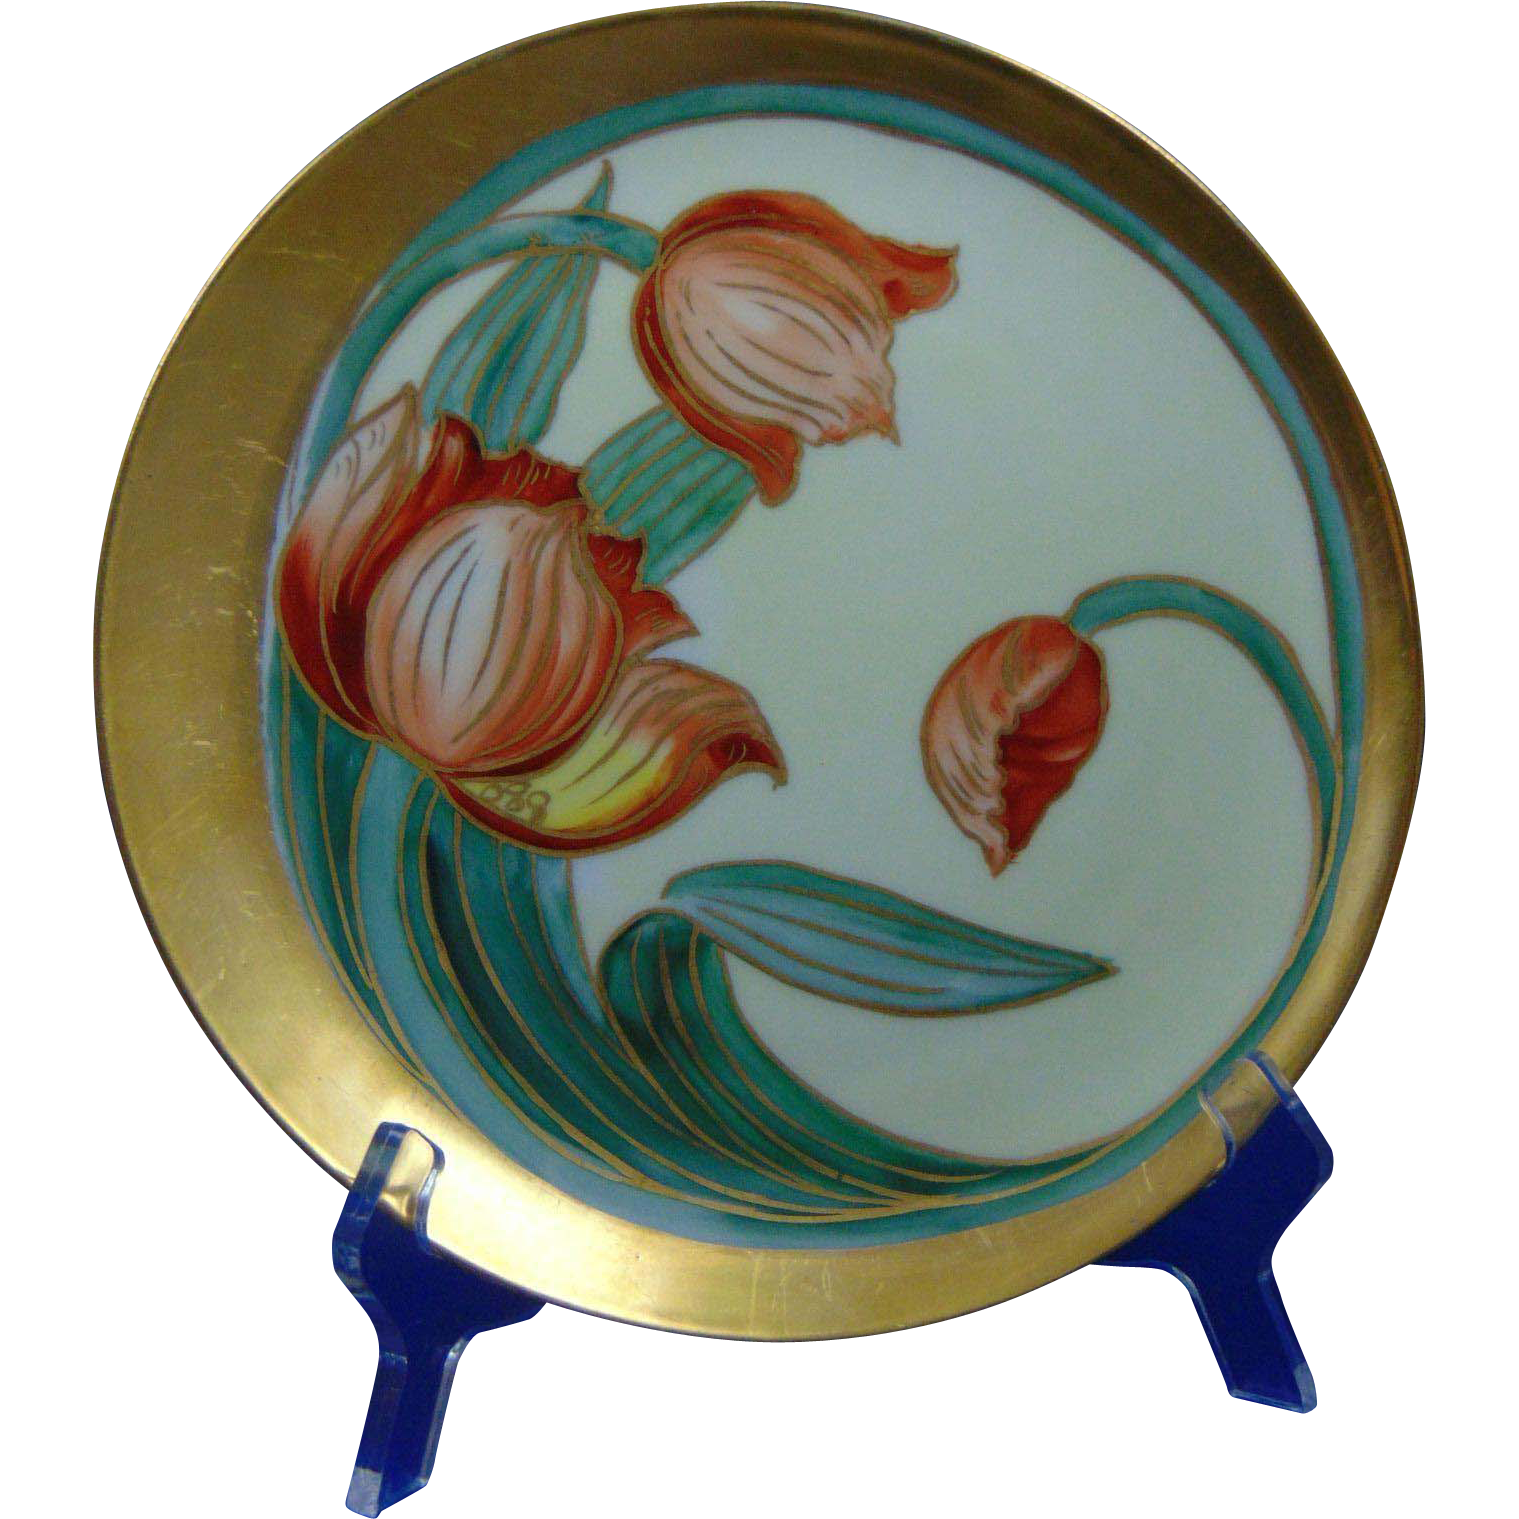 Haviland Limoges Pickard Studios Tulip Design Plate (c.1905-1910)